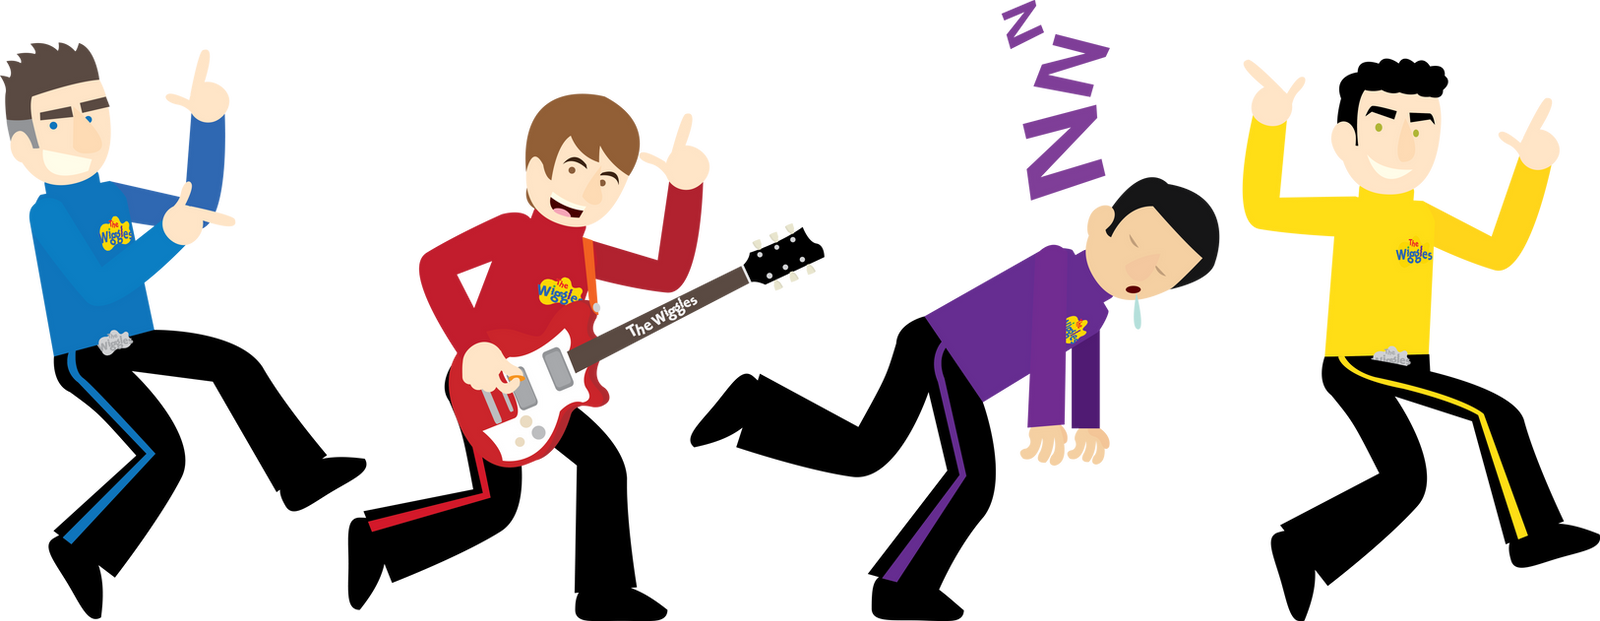 The Wiggles By Dillonquador On Deviantart